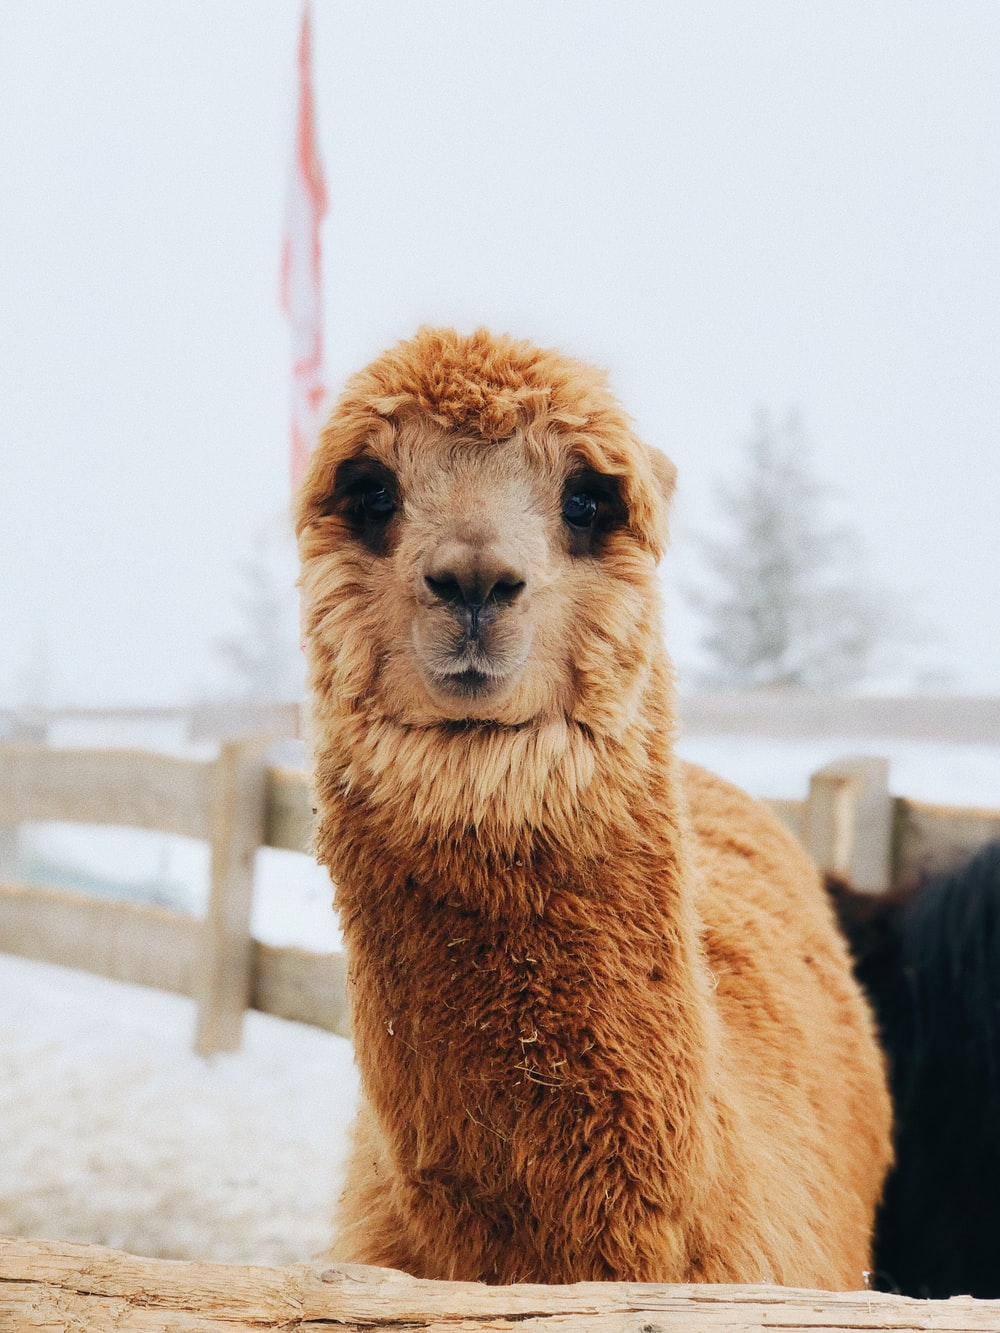 brown llama under cloudy sky during daytime